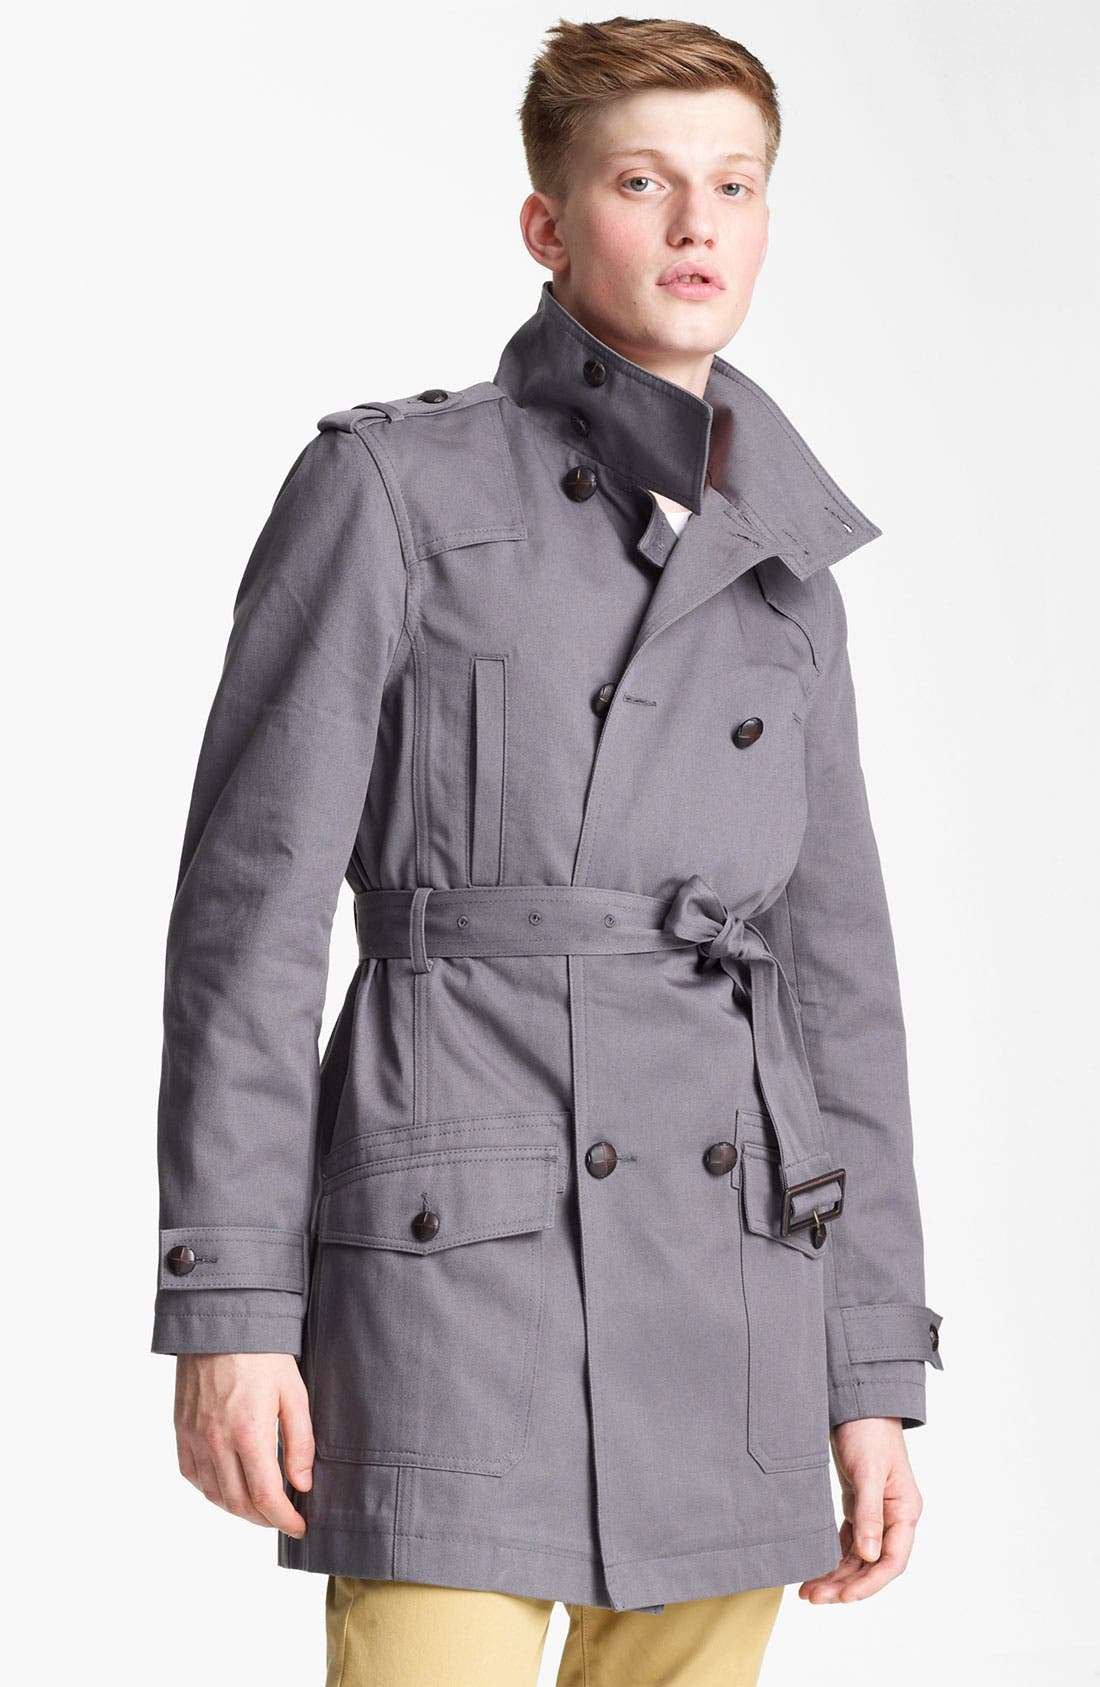 Alternate Image 1 Selected - Topman 'Kennington' Full Length Jacket